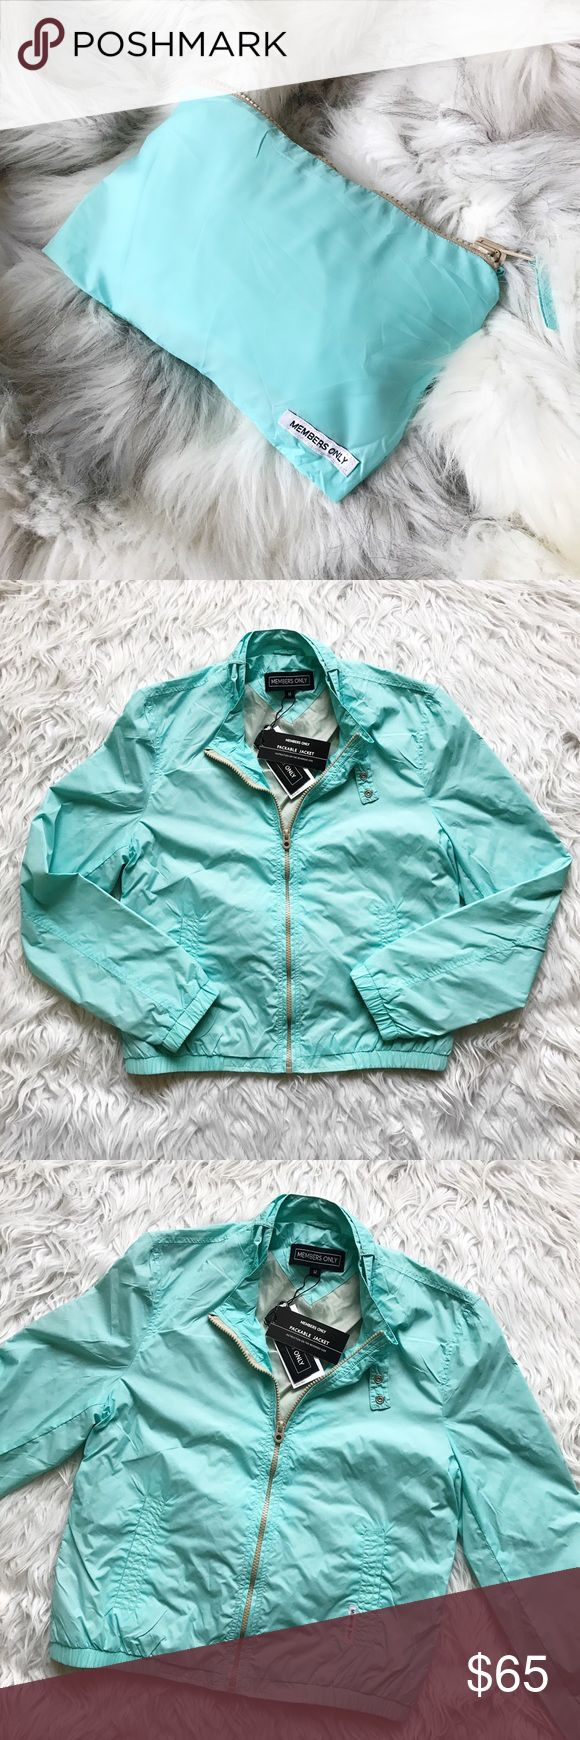 • Members Only • Packable Jacket NEW Stunning Tiffany blue nylon windbreaker jacket! Packs into a small pouch through pocket on the back. Urban Outfitters Jackets & Coats